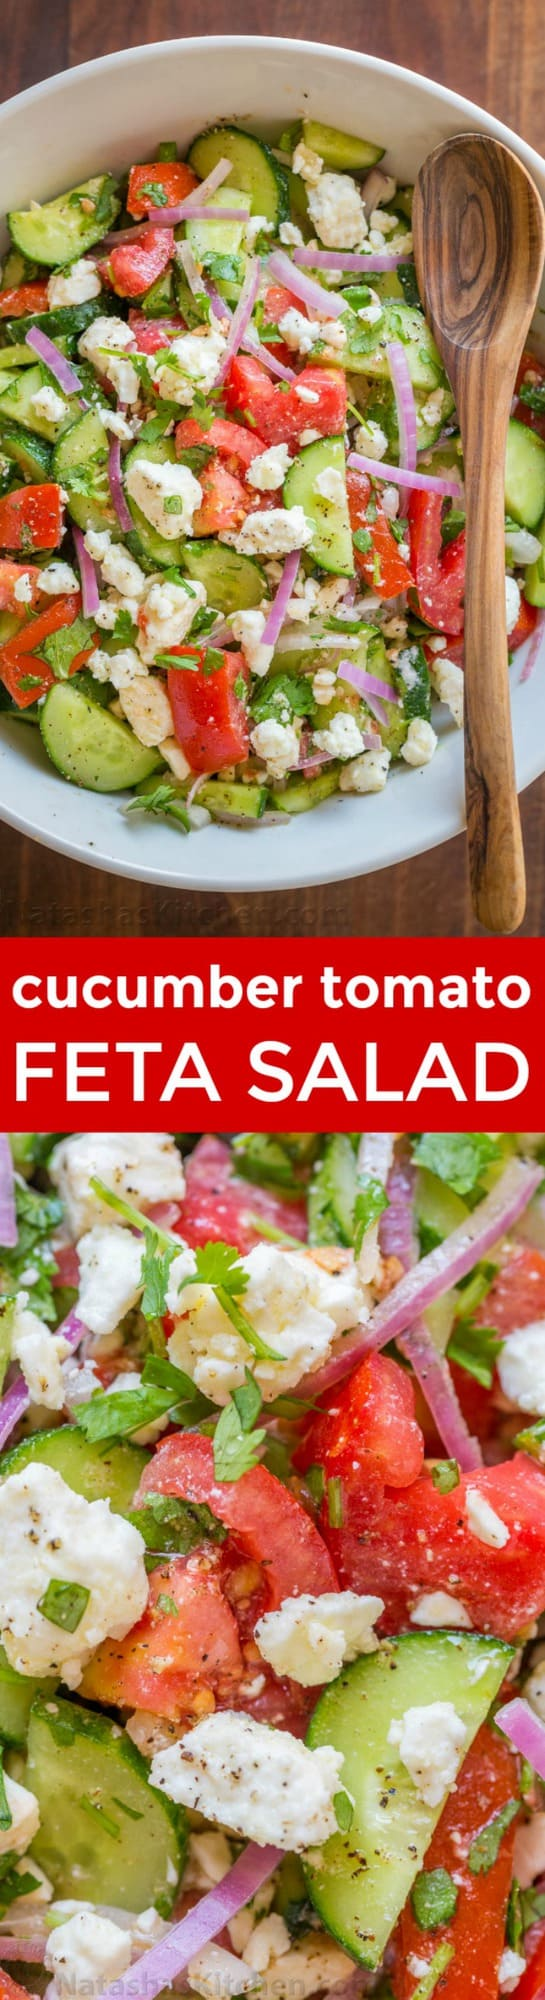 This Tomato Cucumber Feta Salad has simple ingredients that are a winning combination. Refreshing and flavorful! A new favorite cucumber tomato feta salad! | natashaskitchen.com